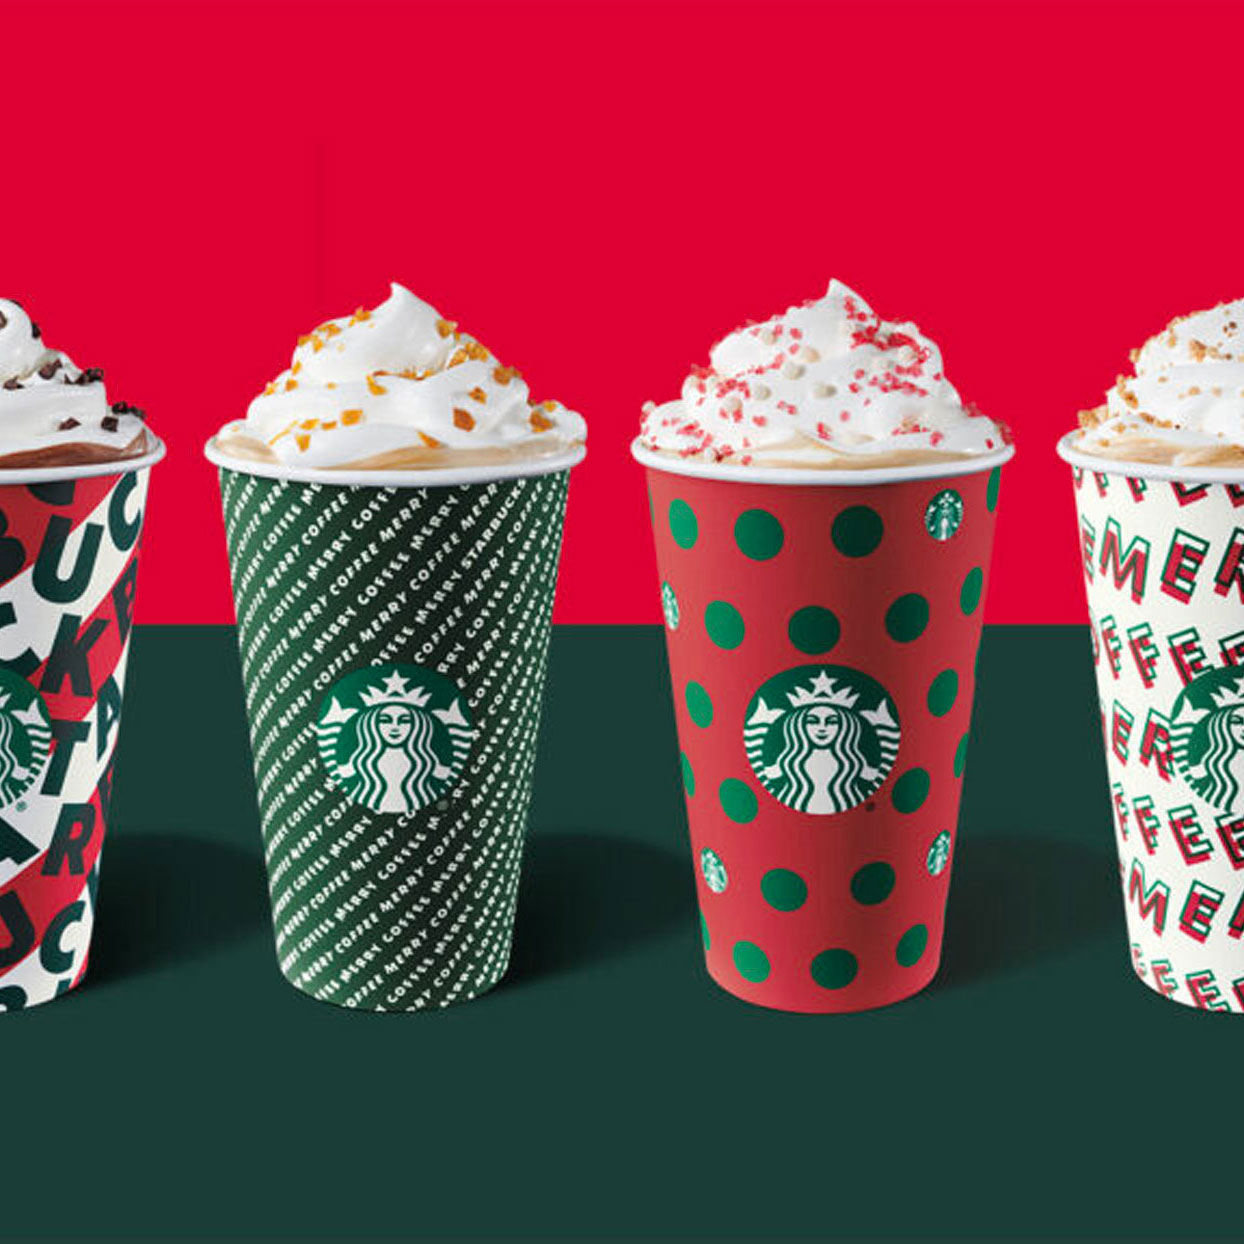 Starbucks' Holiday Beverages Can Have Up to 14 Teaspoons of Added Sugar—Here's How to Lighten Up Your Order